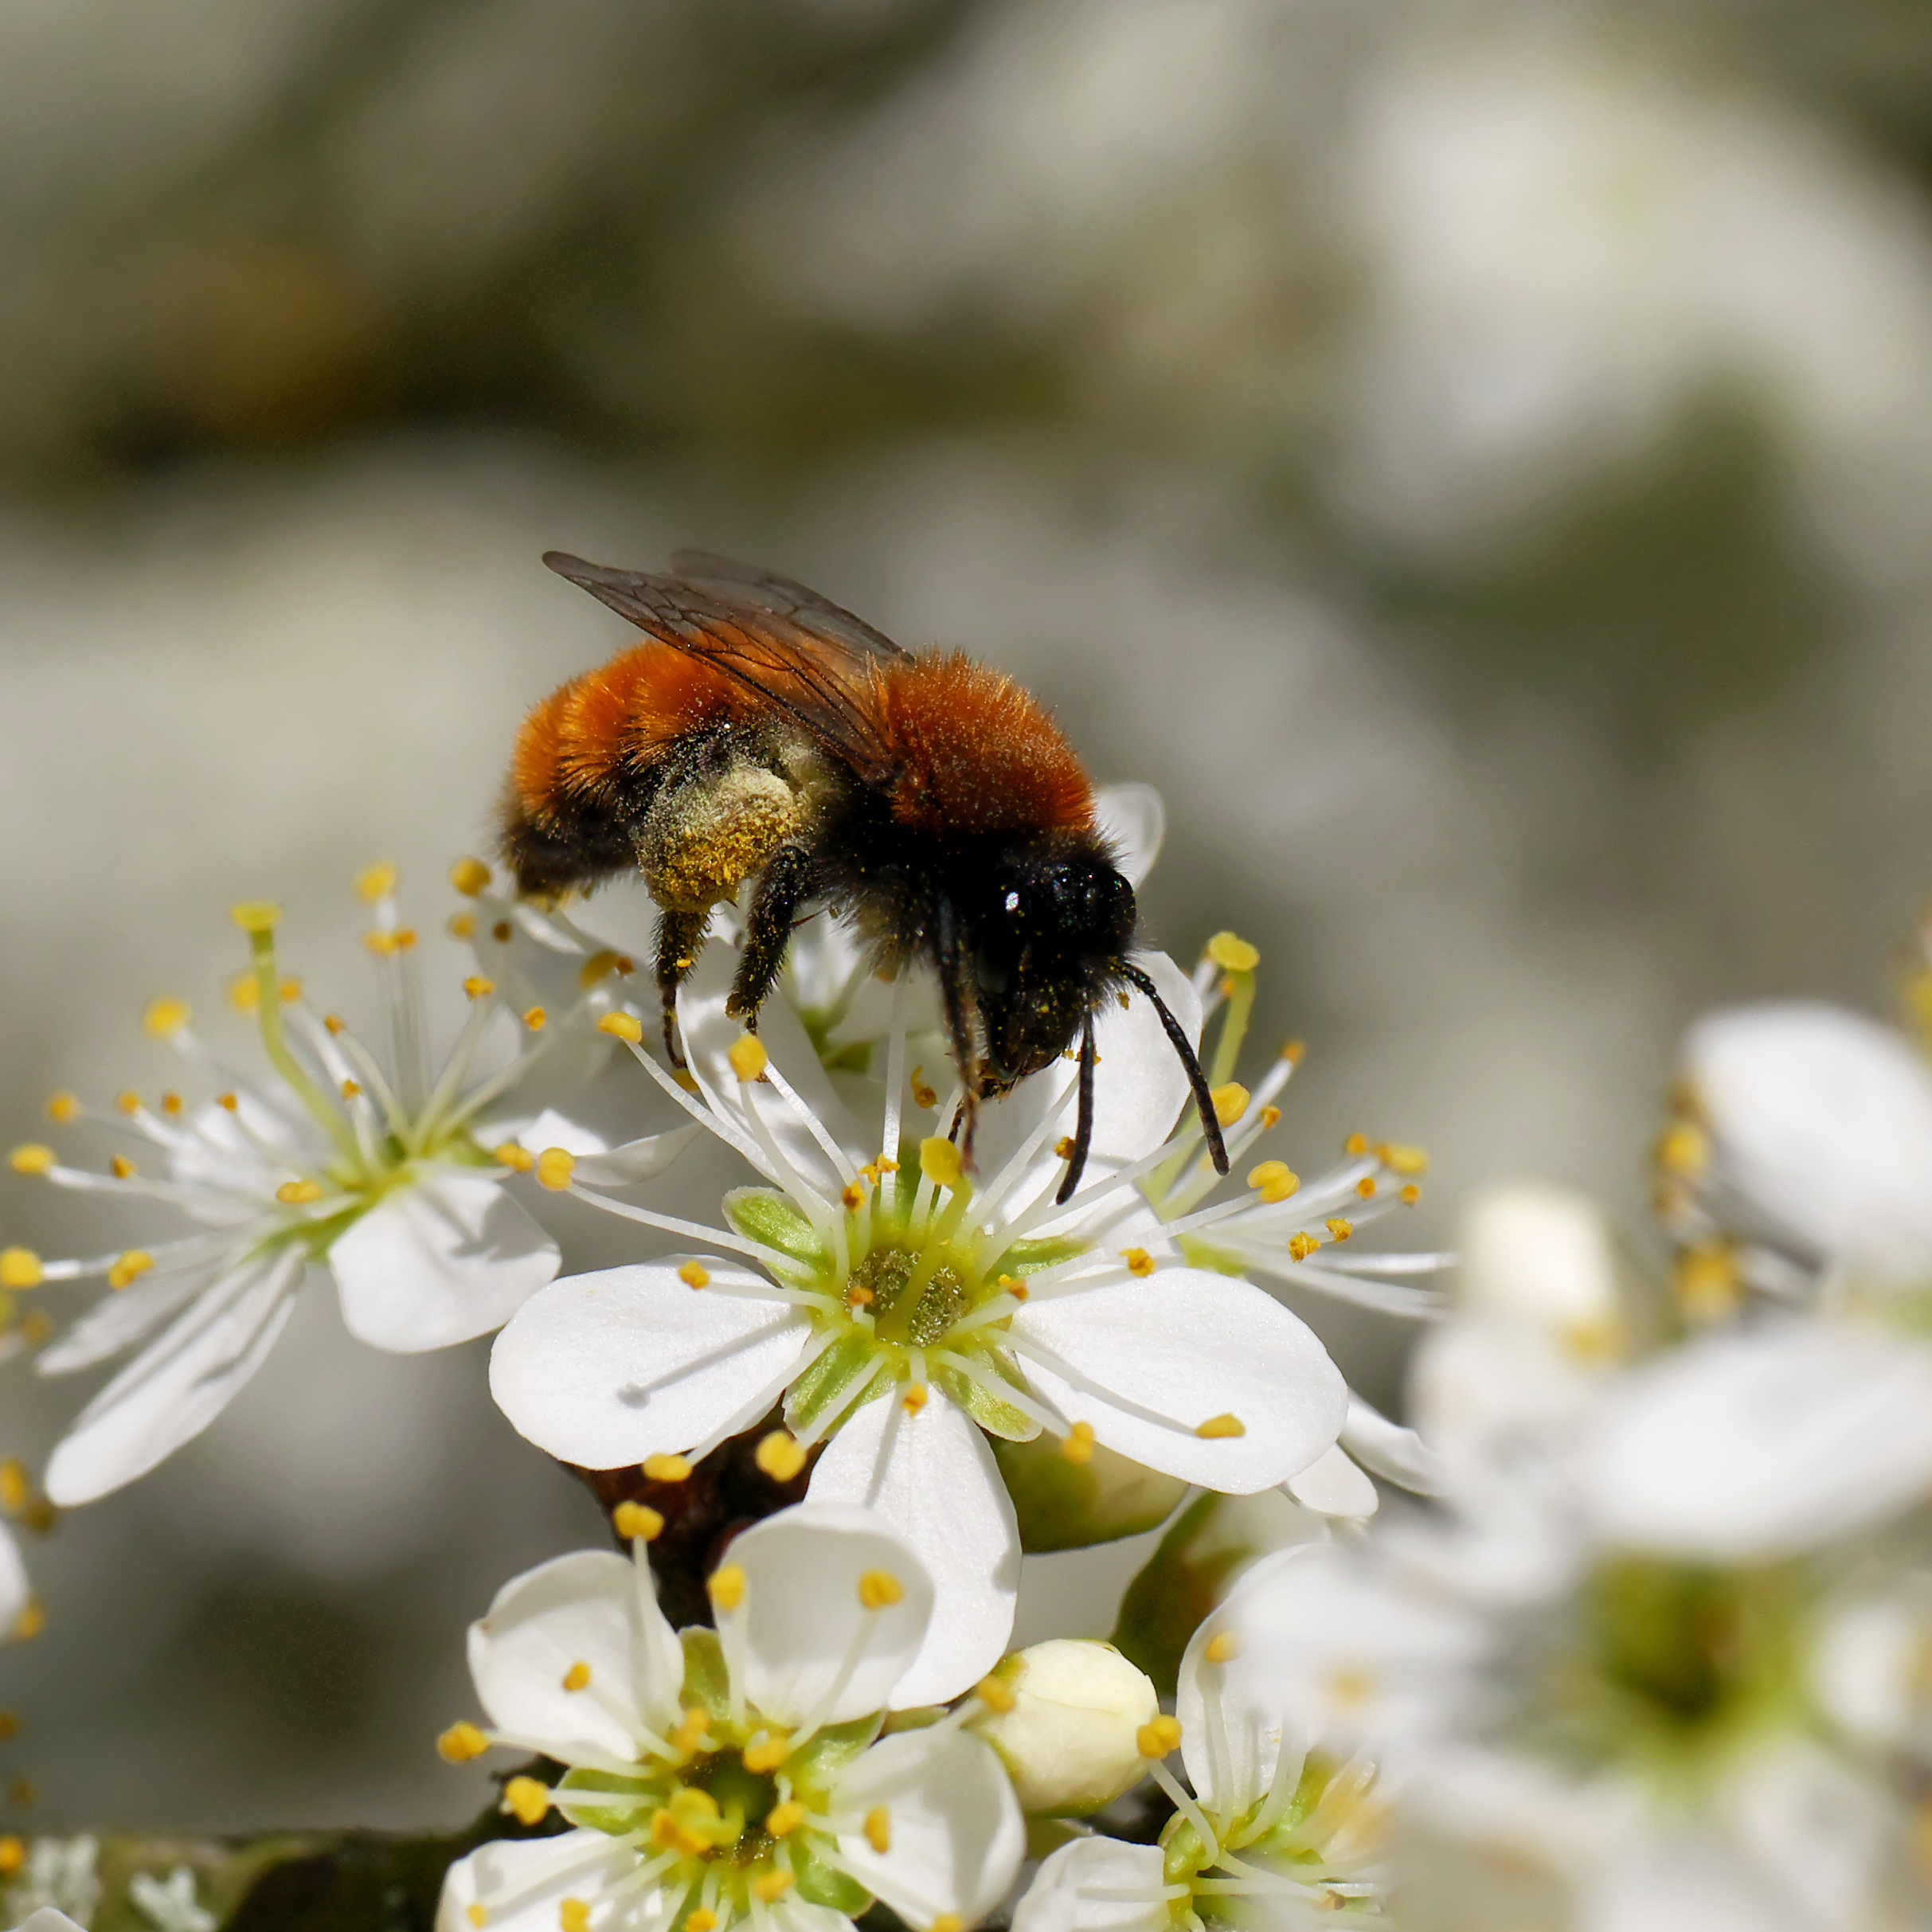 Photograph of a tawny mining bee on a flower